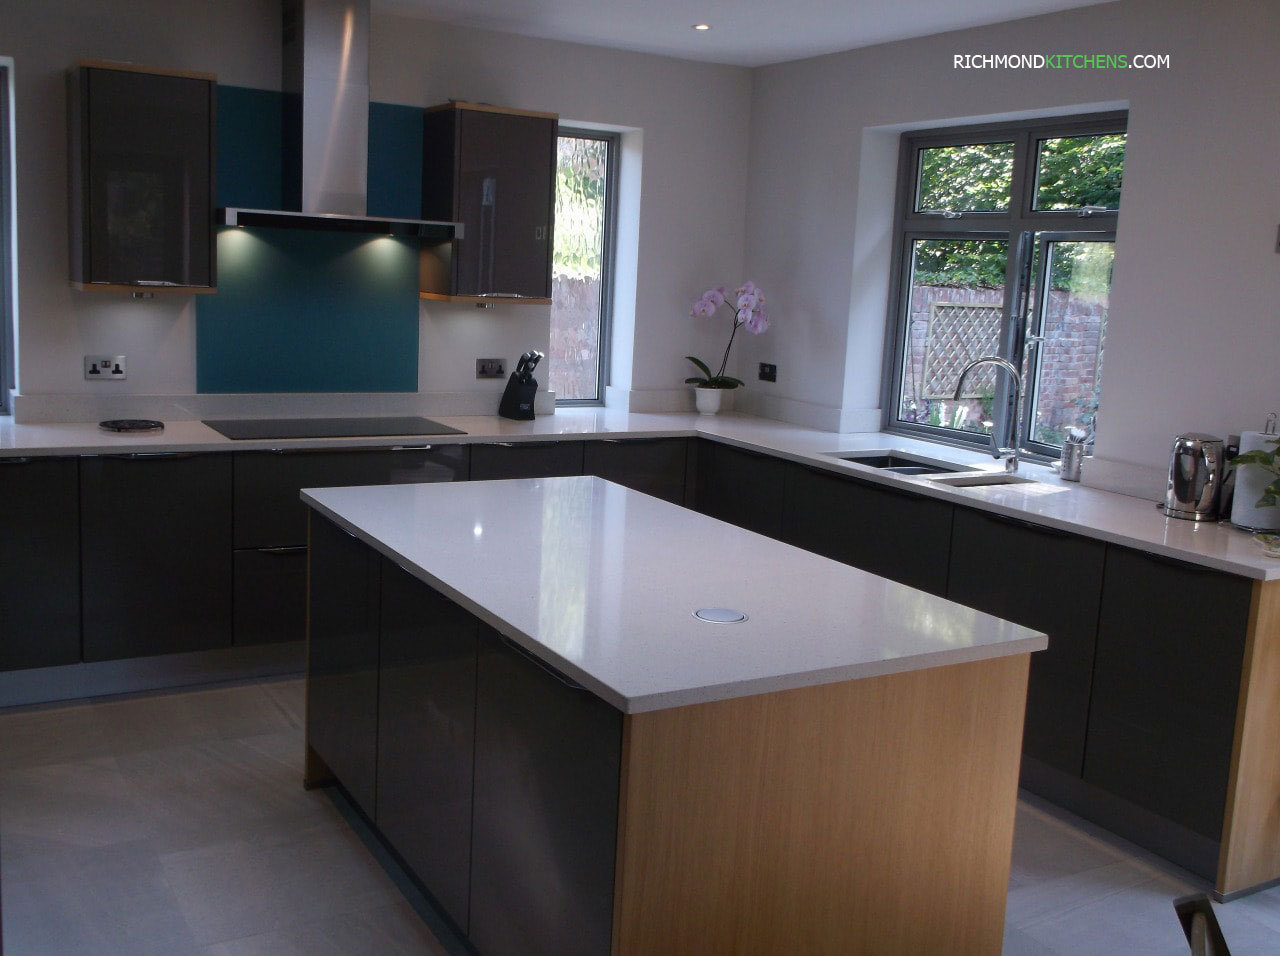 kitchen design kingston upon thames kitchen showroom surrey walton upon thames richmond kitchens 791